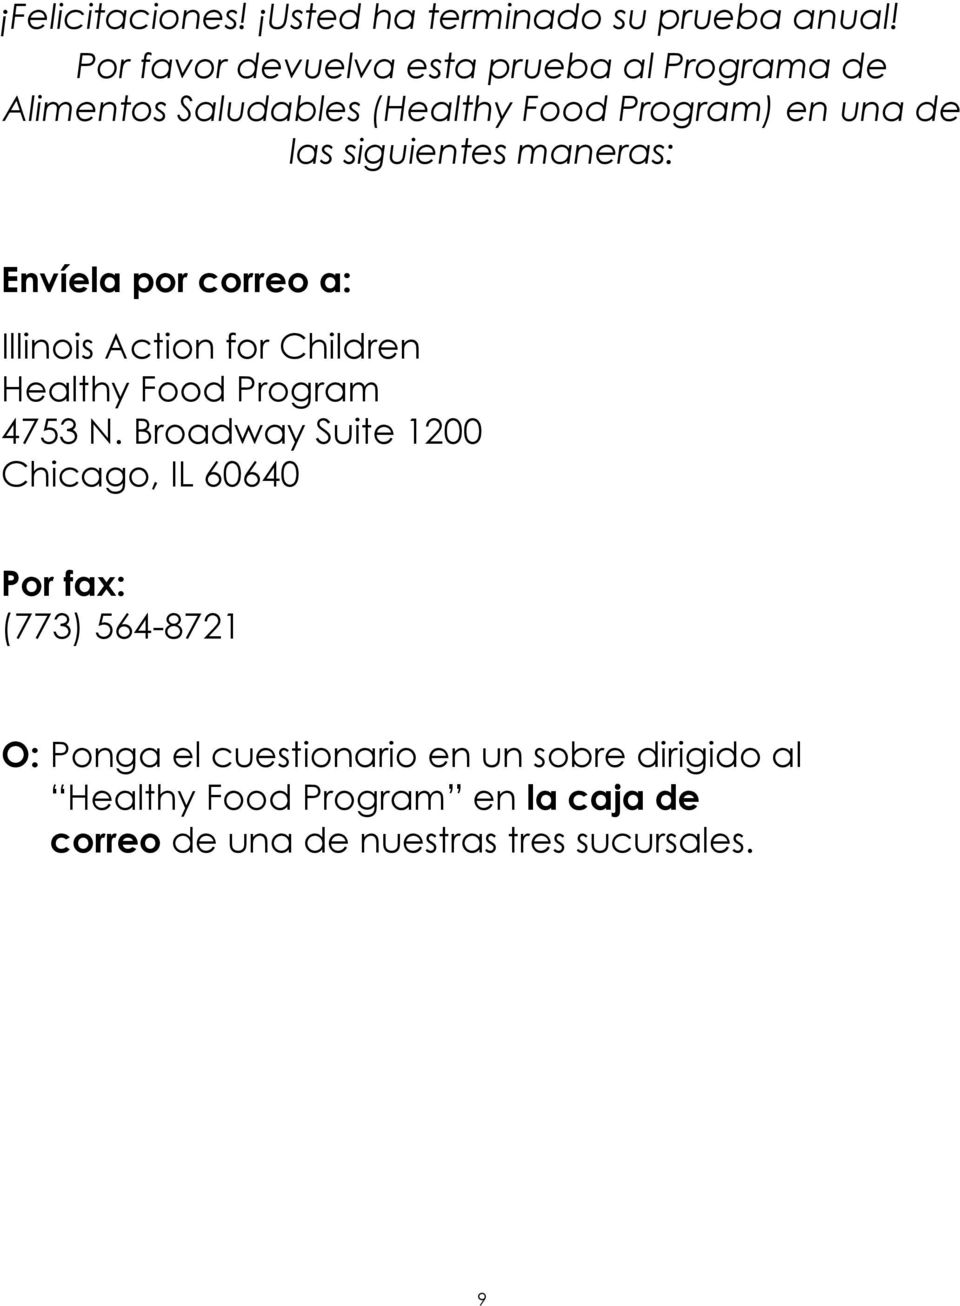 siguientes maneras: Envíela por correo a: Illinois Action for Children Healthy Food Program 4753 N.